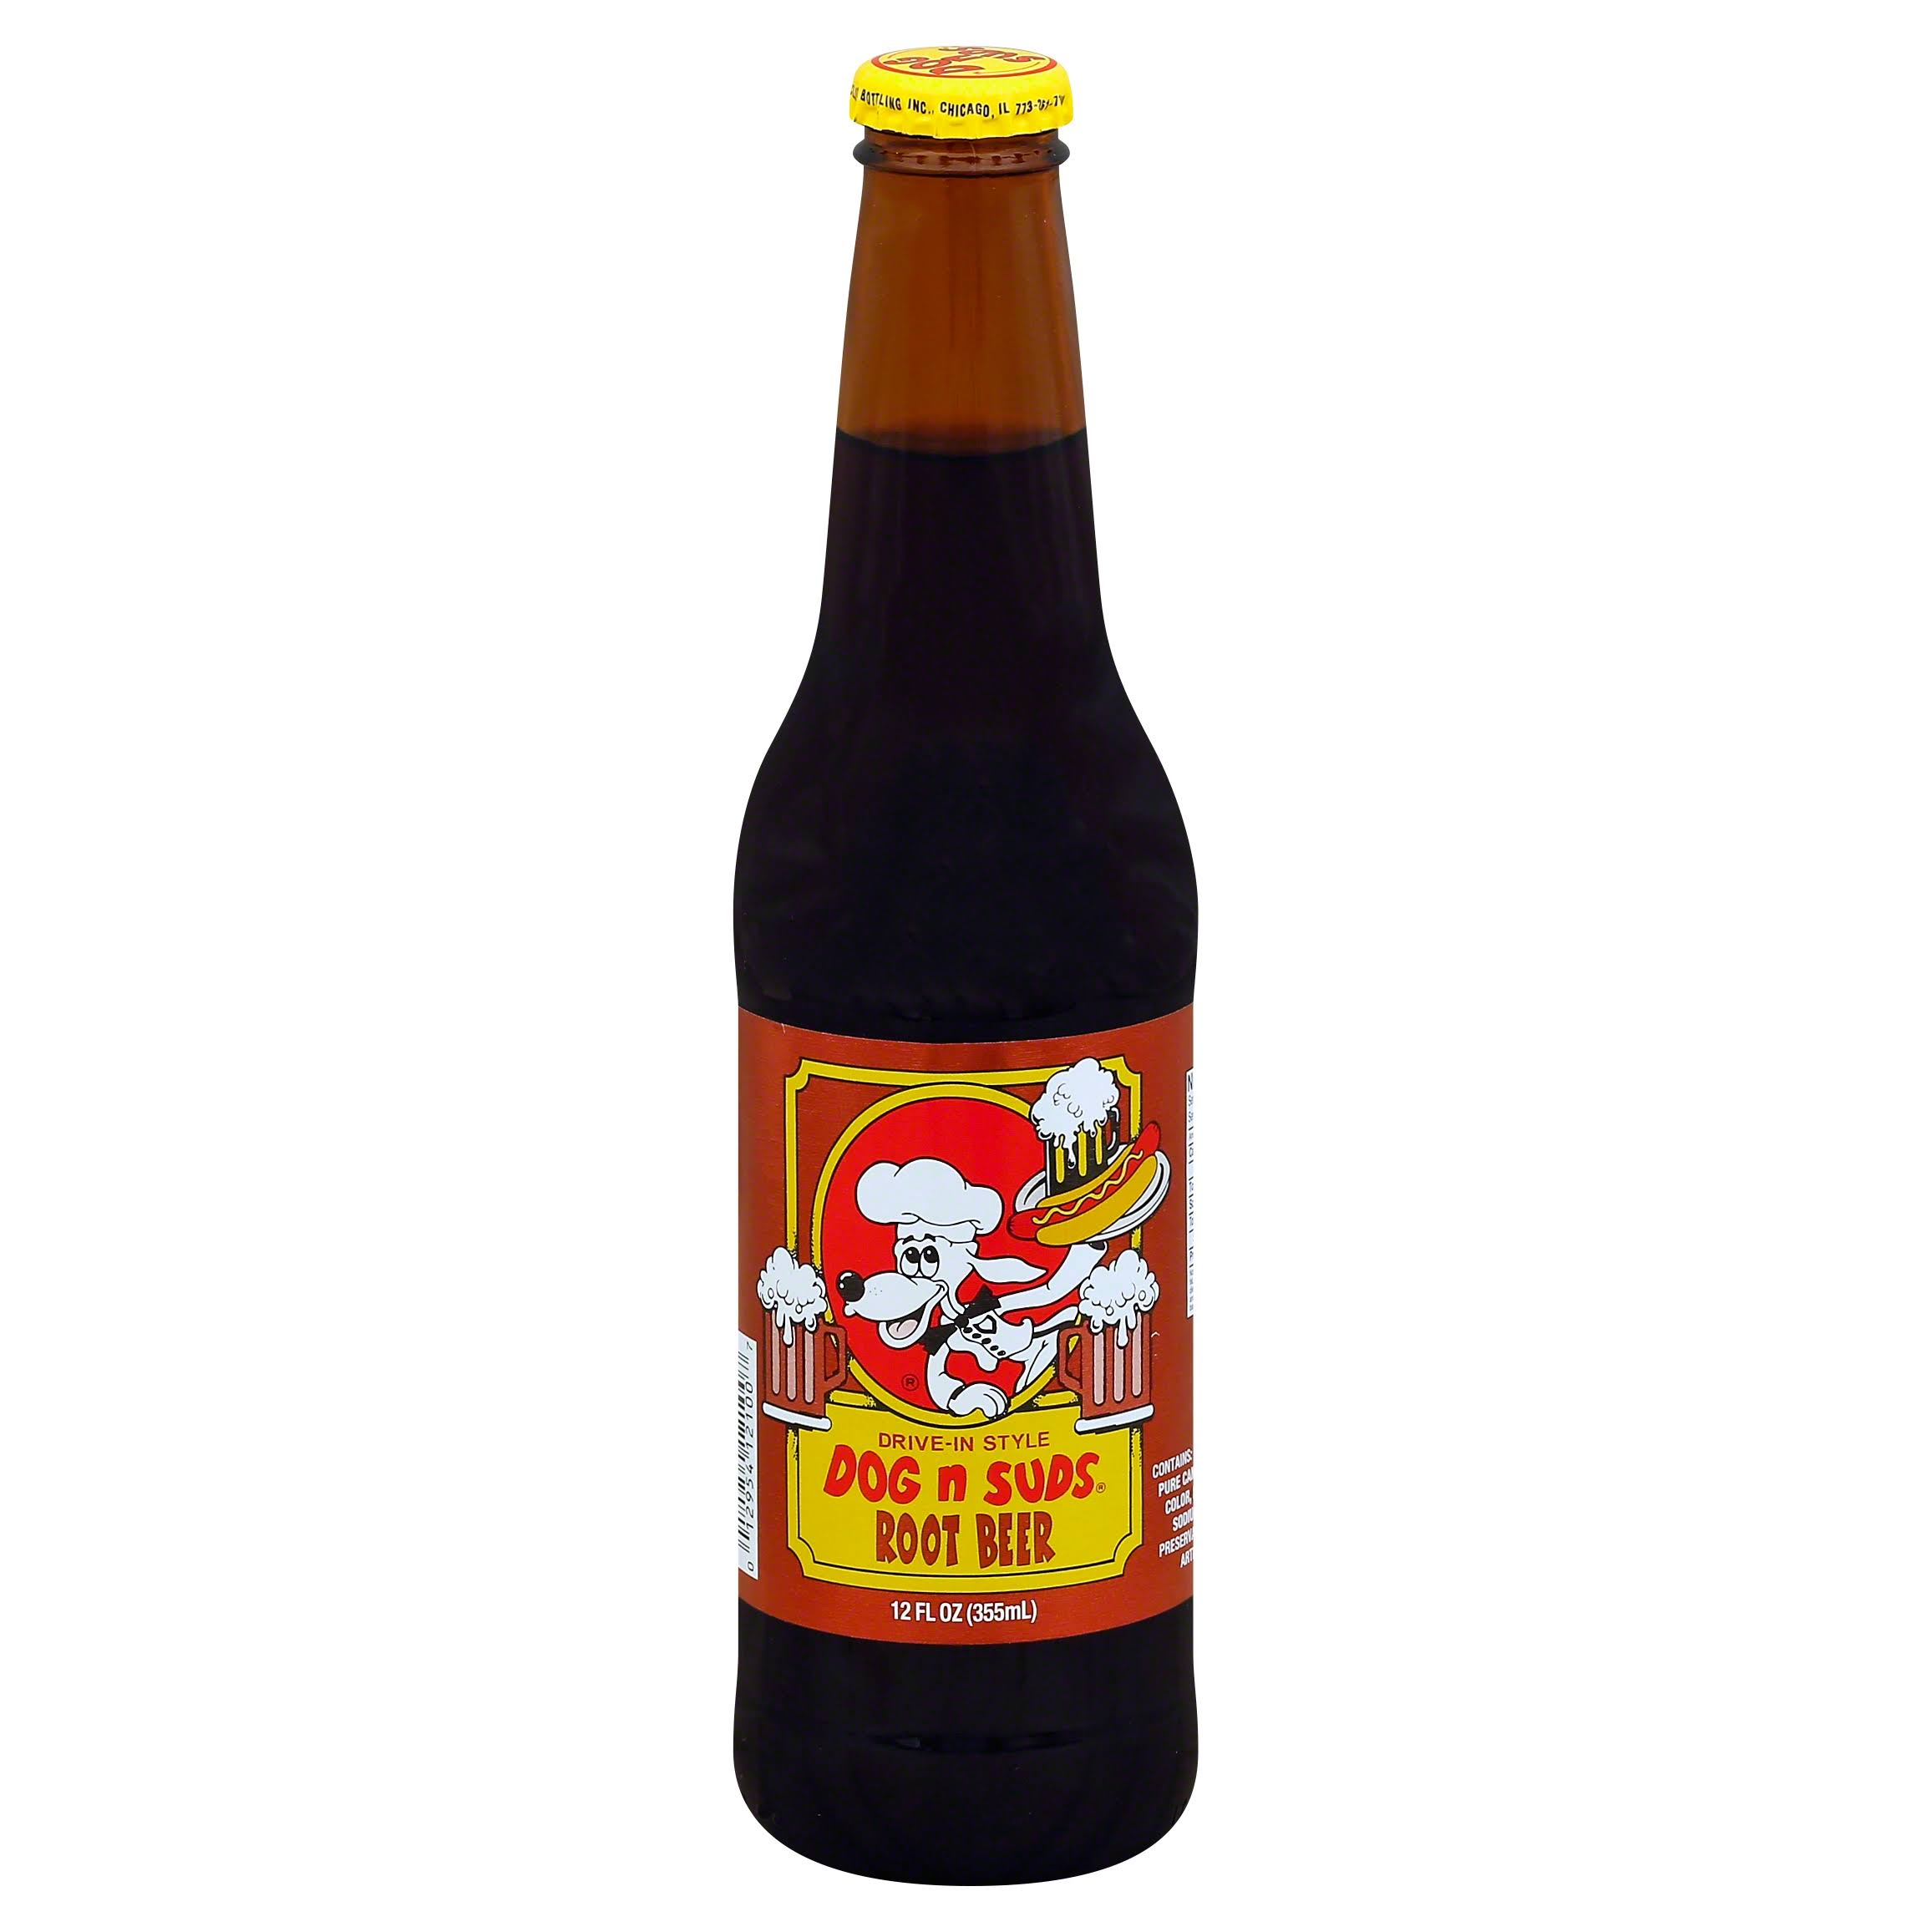 Dog N Suds Root Beer - 6 Bottles, 12floz